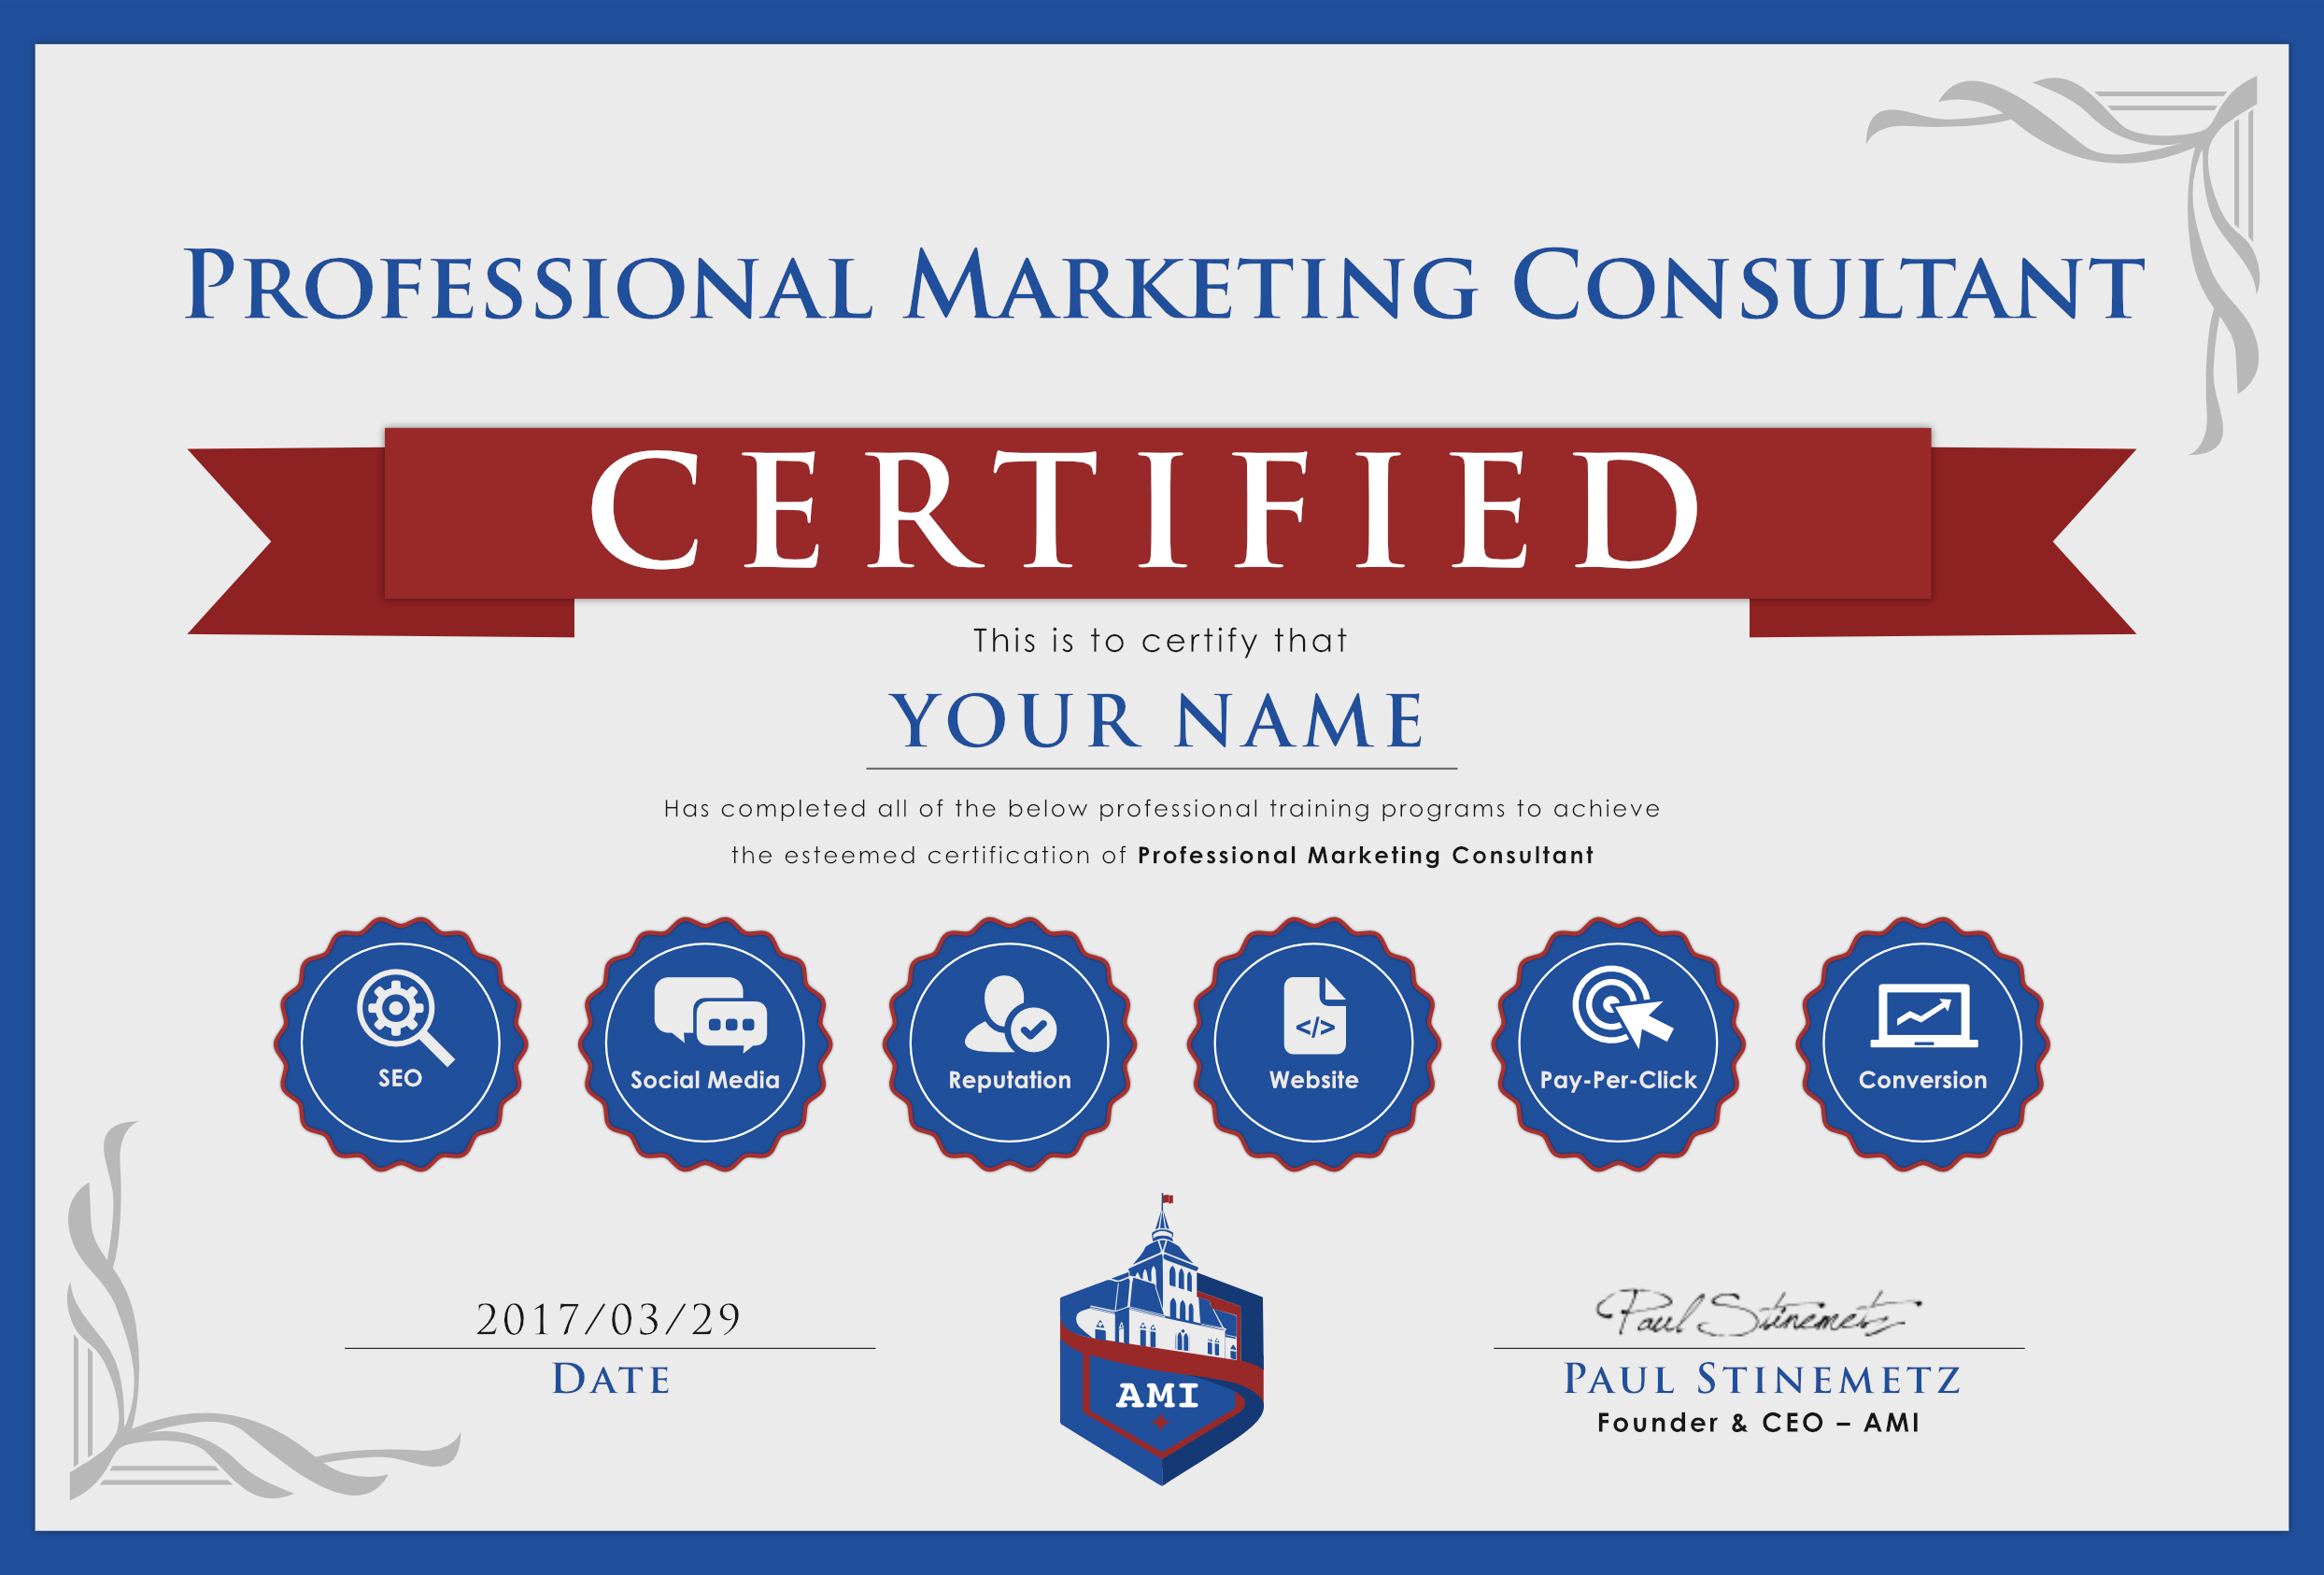 consultant certification marketing testout programs ami professional certificate instructors pc cost exam culminating assignments students offer choose course